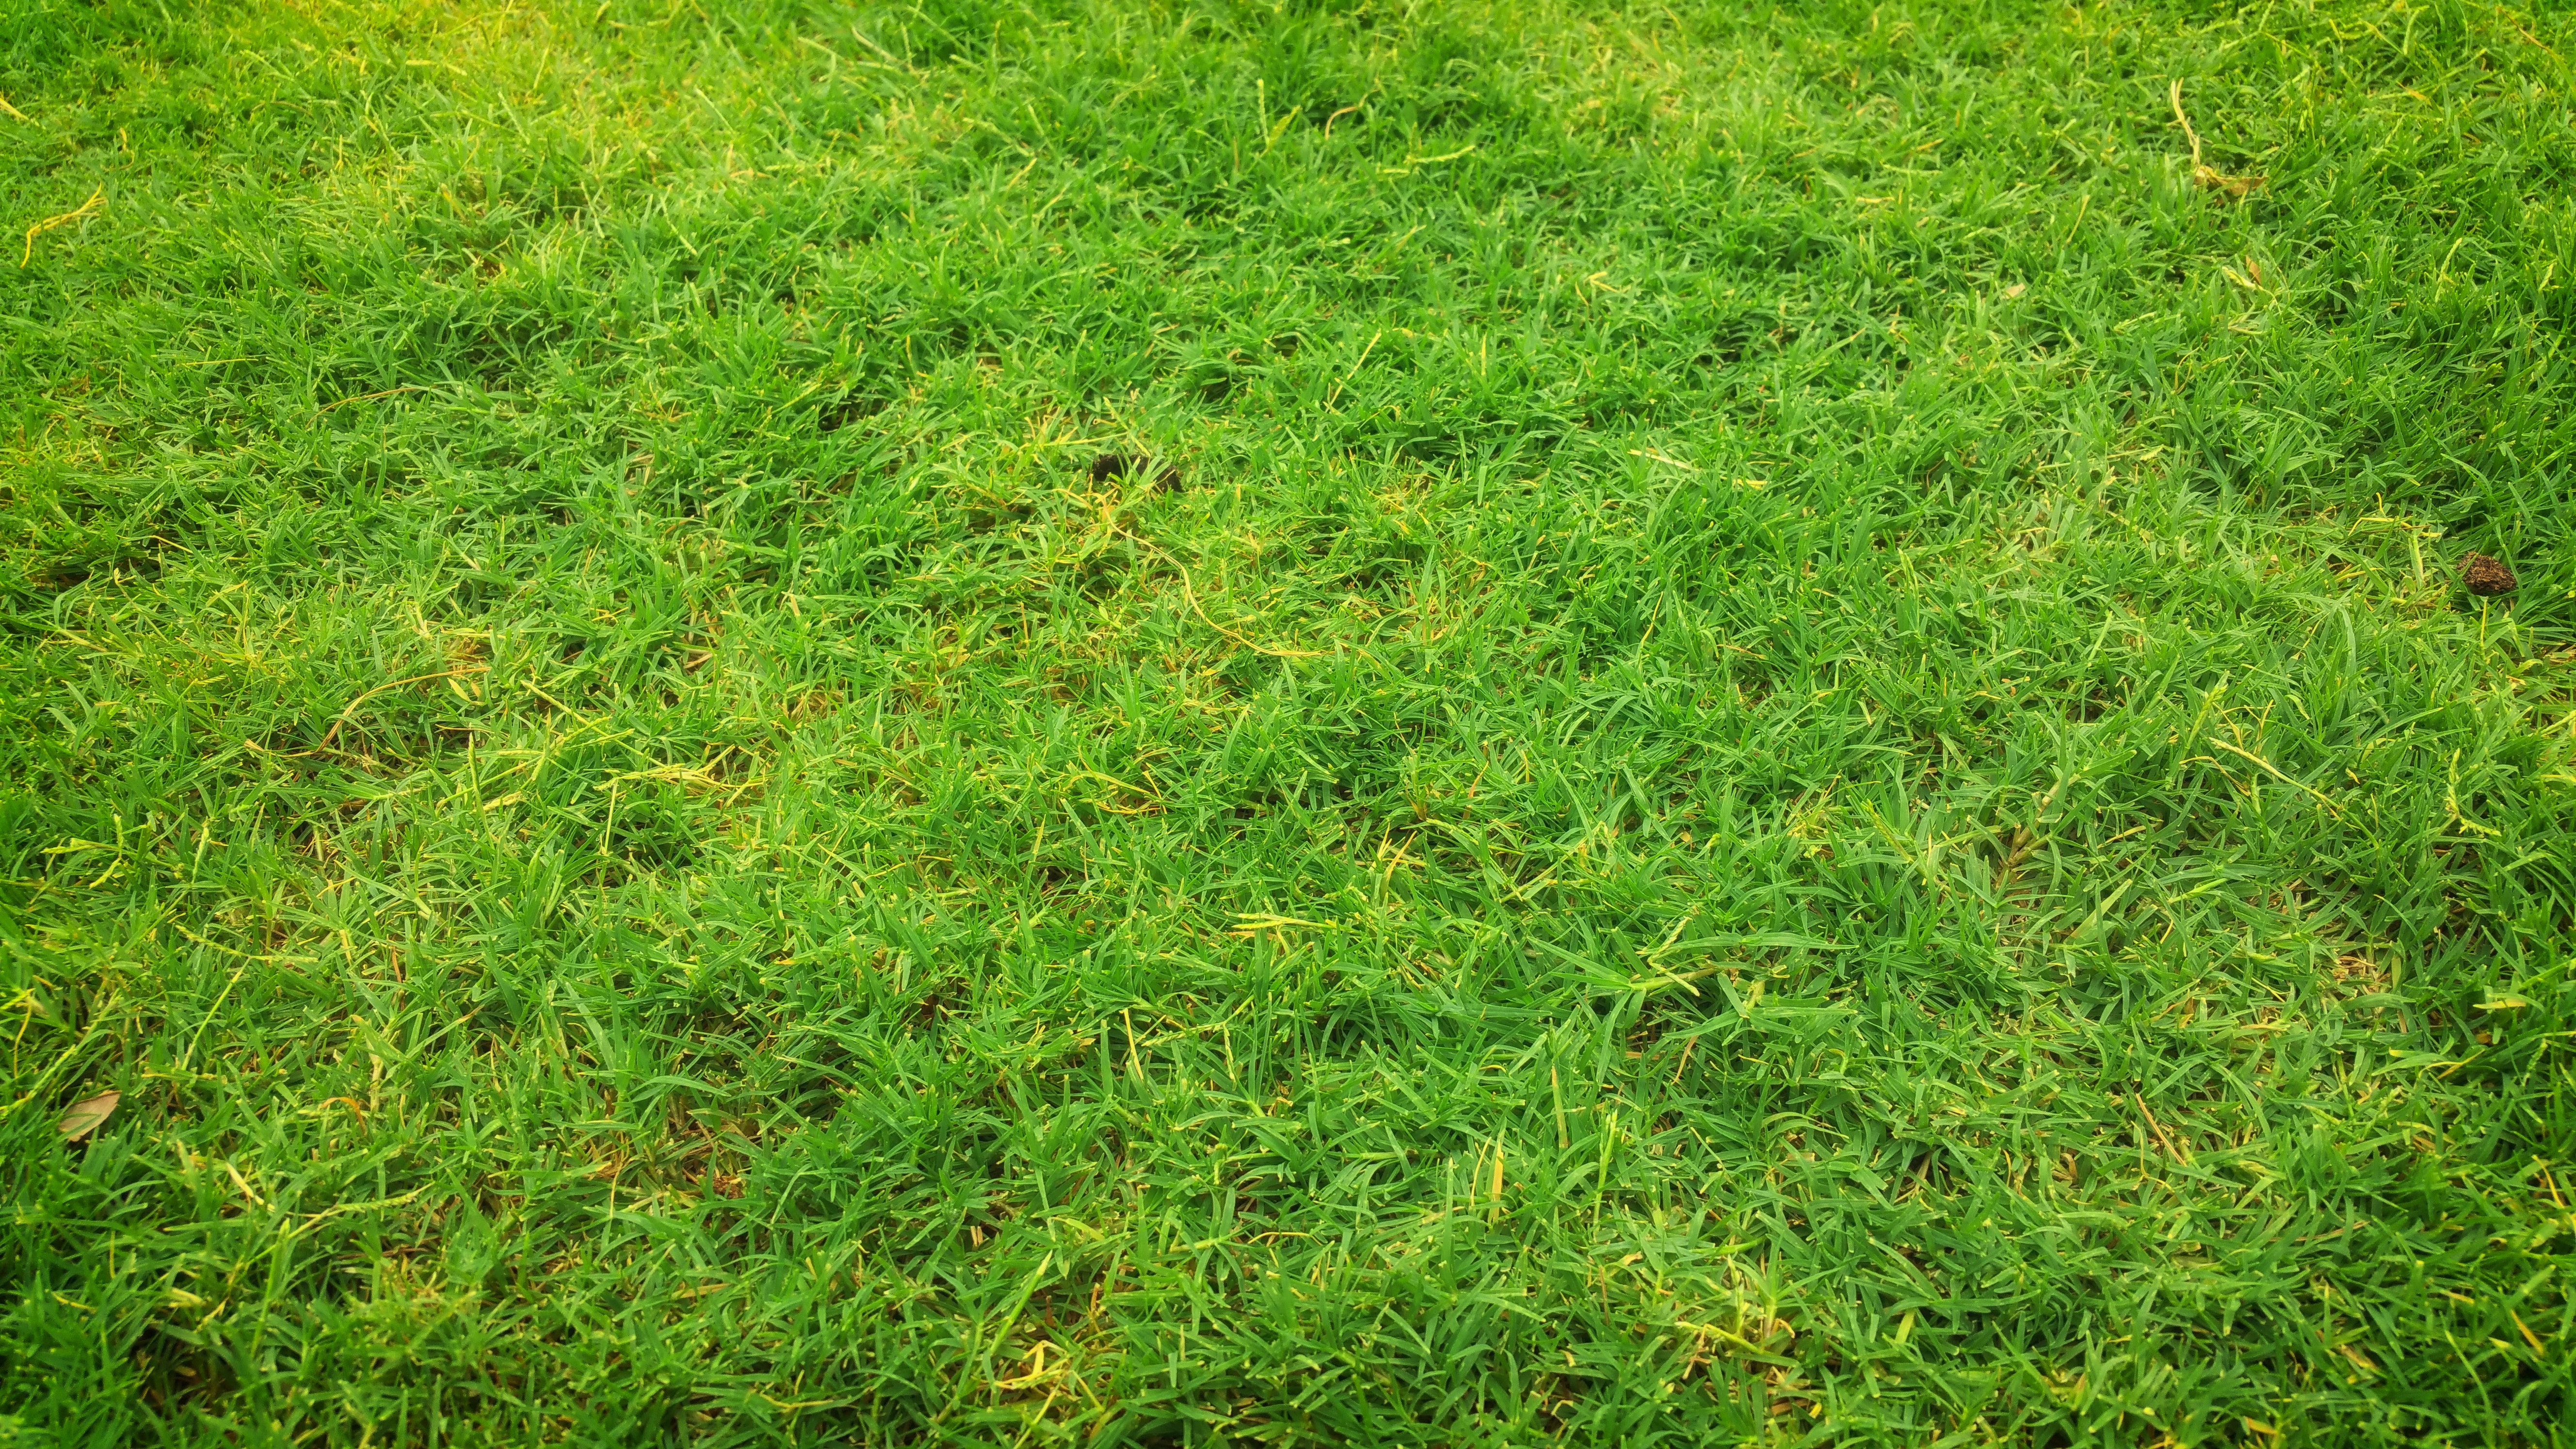 Green Grass, Field, Grass, Grass field, Grass land, HQ Photo